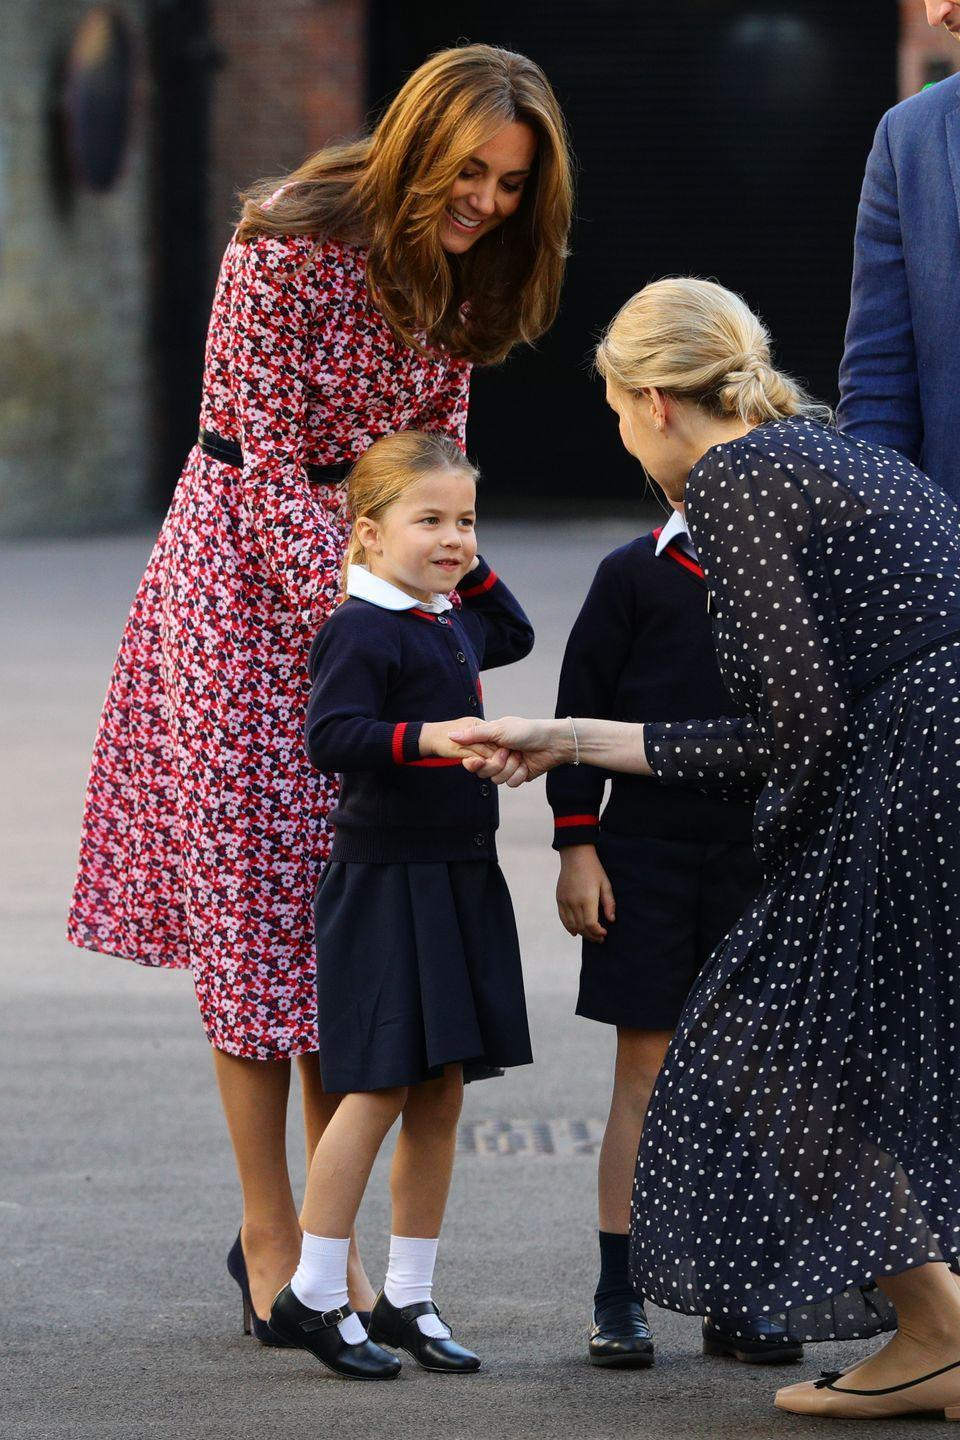 "<p>Mama Middleton accompanied Princess Charlotte to <a href=""https://www.townandcountrymag.com/society/tradition/g28846721/princess-charlotte-first-day-of-school-photos/"" rel=""nofollow noopener"" target=""_blank"" data-ylk=""slk:her first day of school at St. Thomas Battersea"" class=""link rapid-noclick-resp"">her first day of school at St. Thomas Battersea</a>, where she joined her brother Prince George. They grow up so fast.</p>"